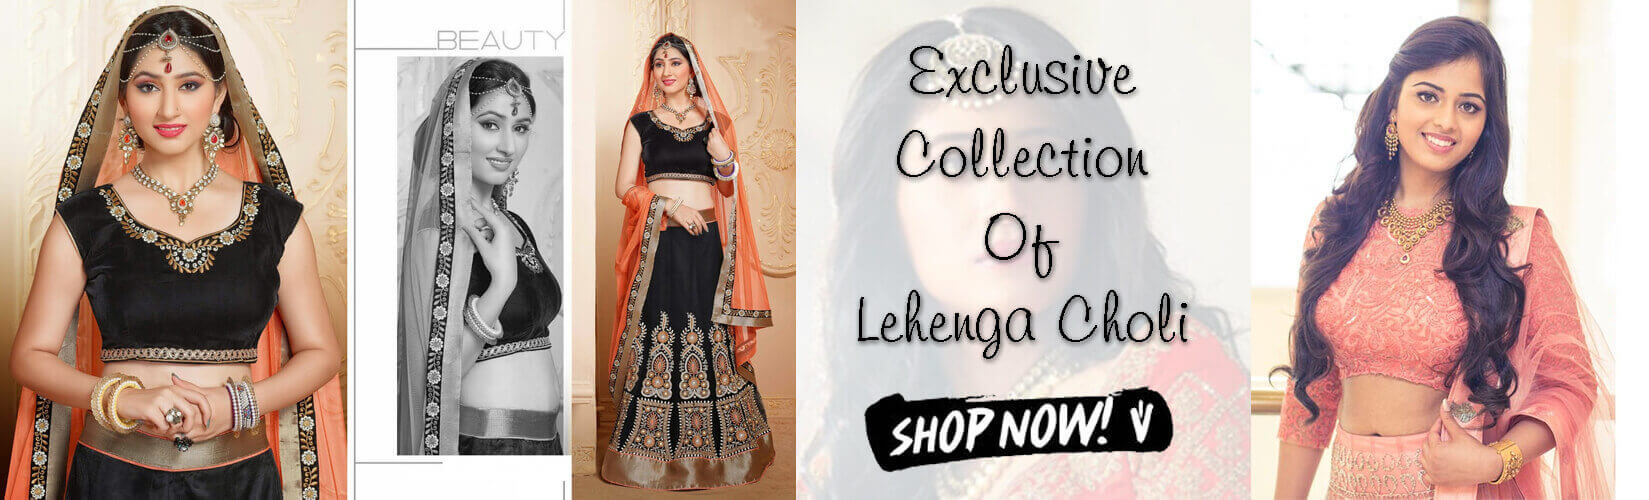 Wholesale Lehenga Choli From Surati Fabric banner